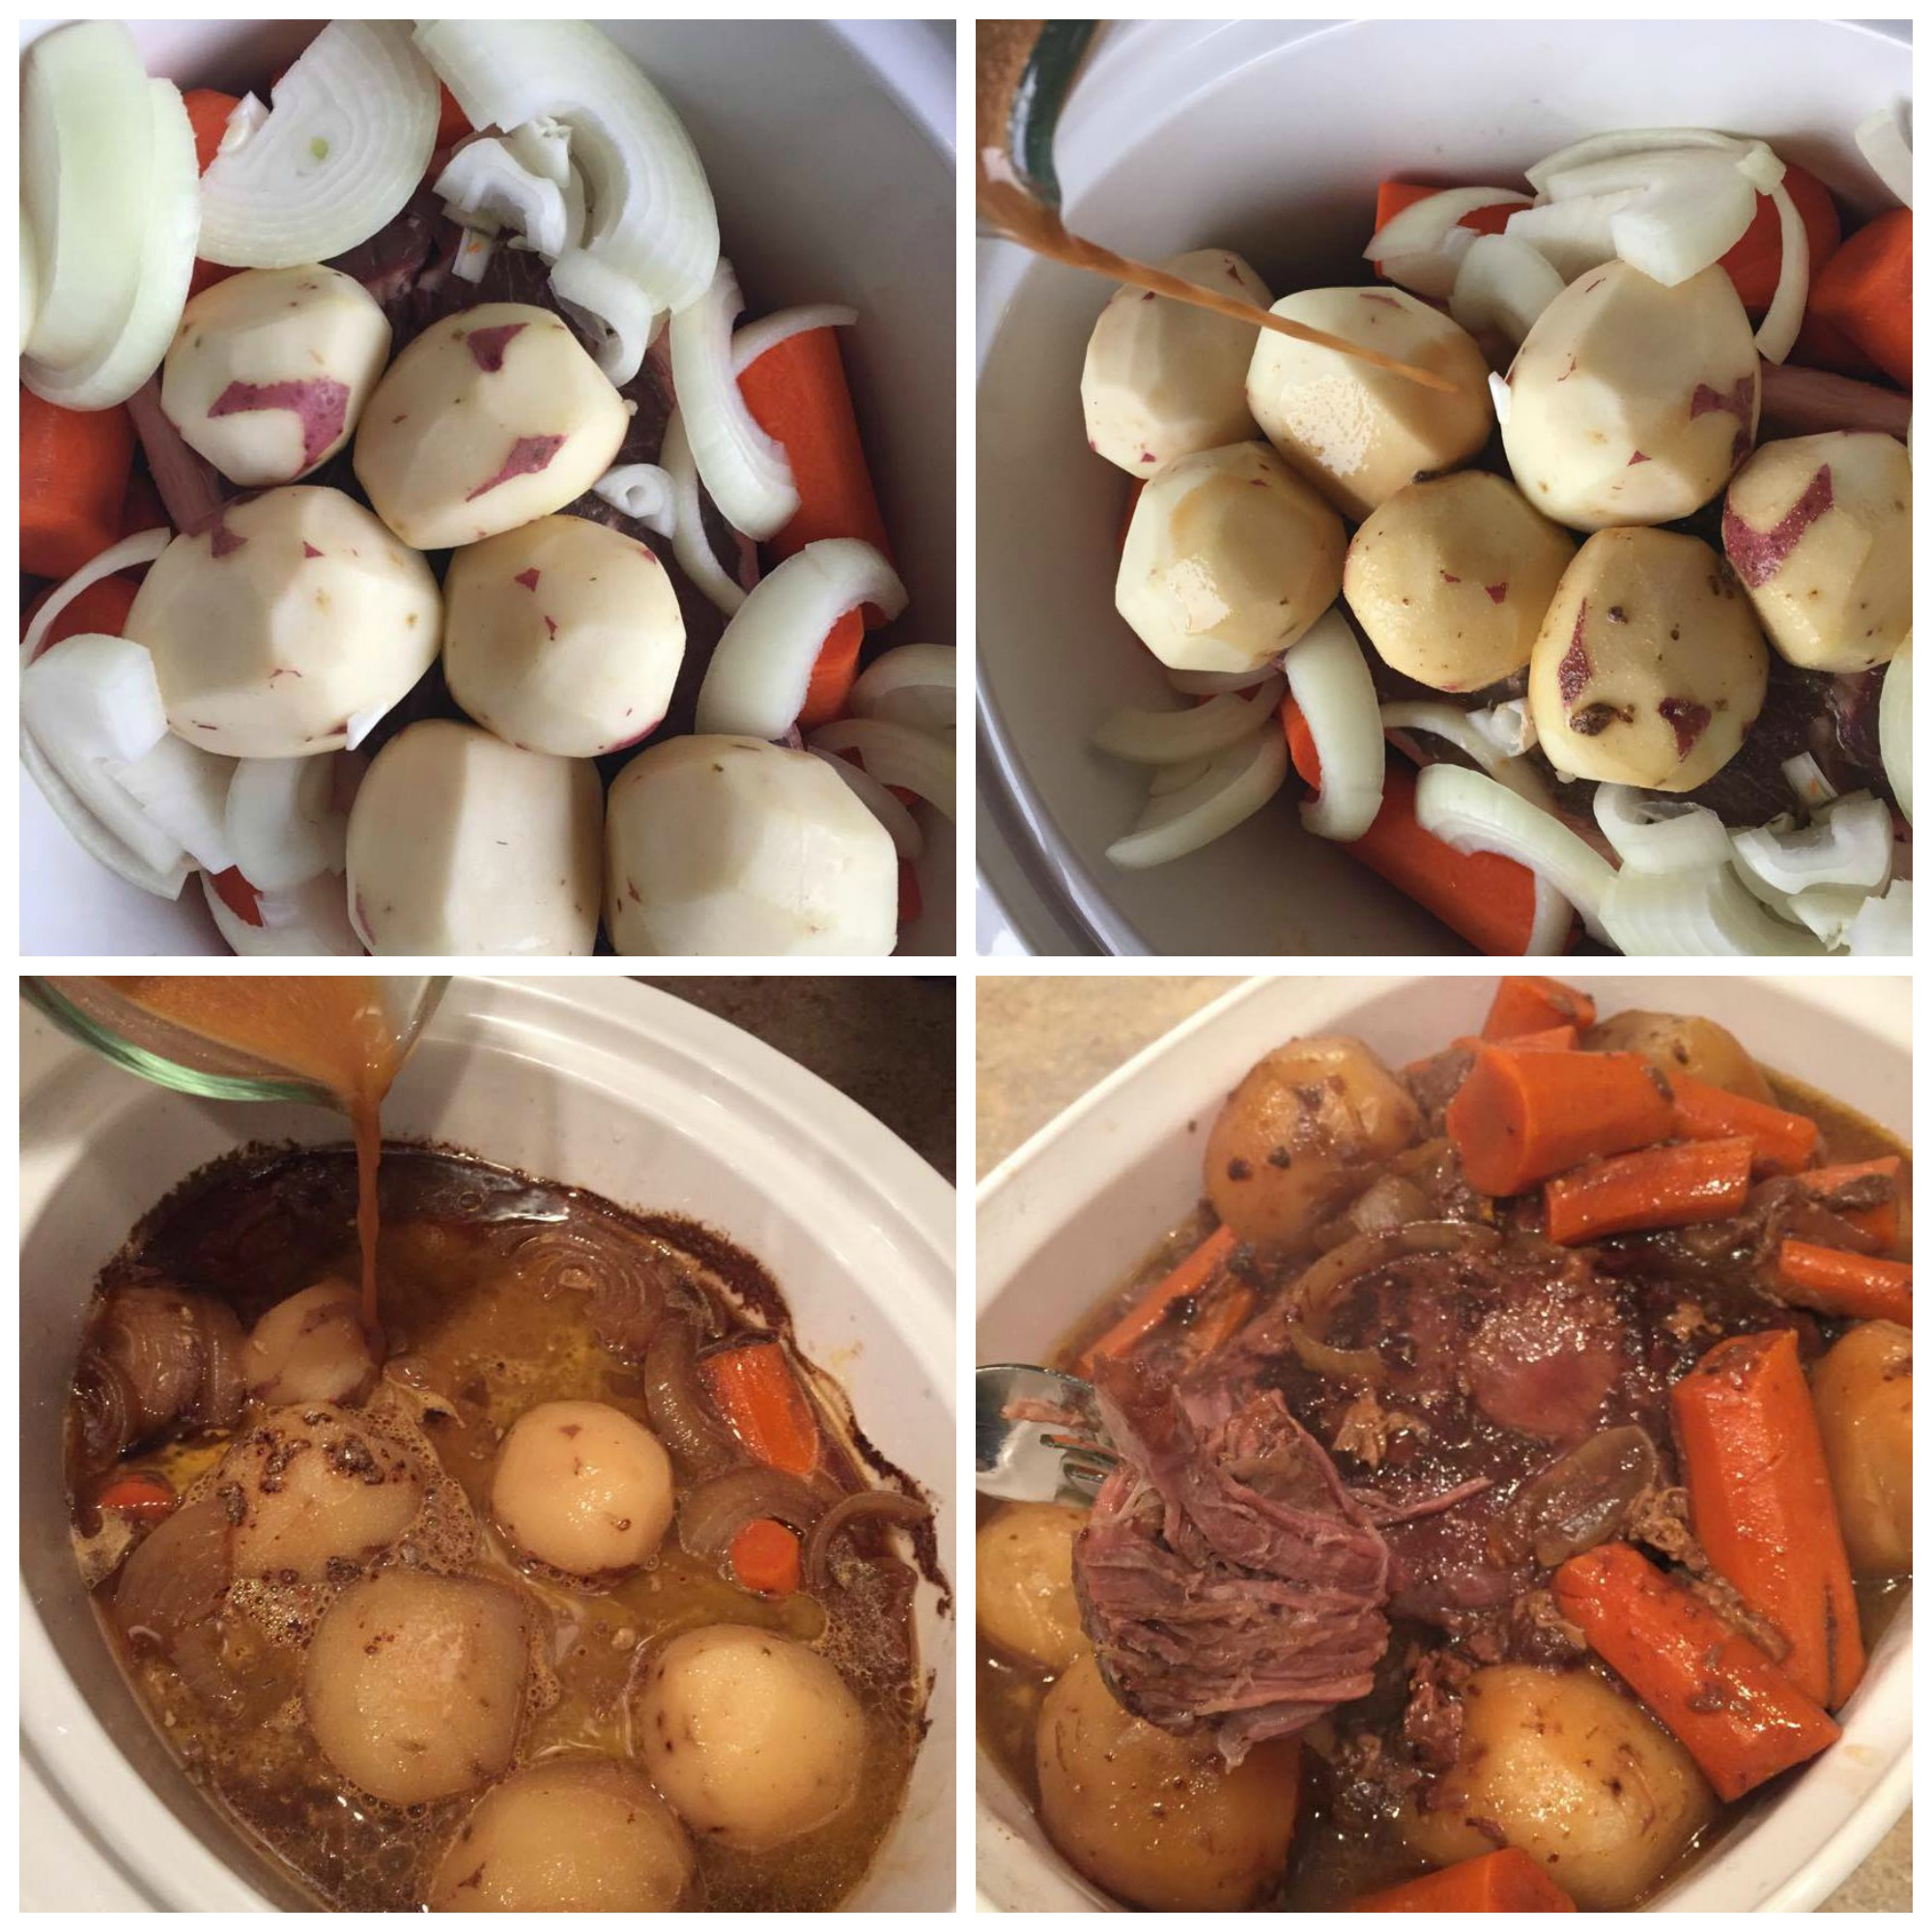 This slow cooker pot roast is my go-to meal on a busy week. Pop it in the crock pot and you're ready to go for dinner. Its so good, too. Nothing like a perfect pot roast to scream comfort food! http://couponcravings.com/slow-cooker-pot-roast/